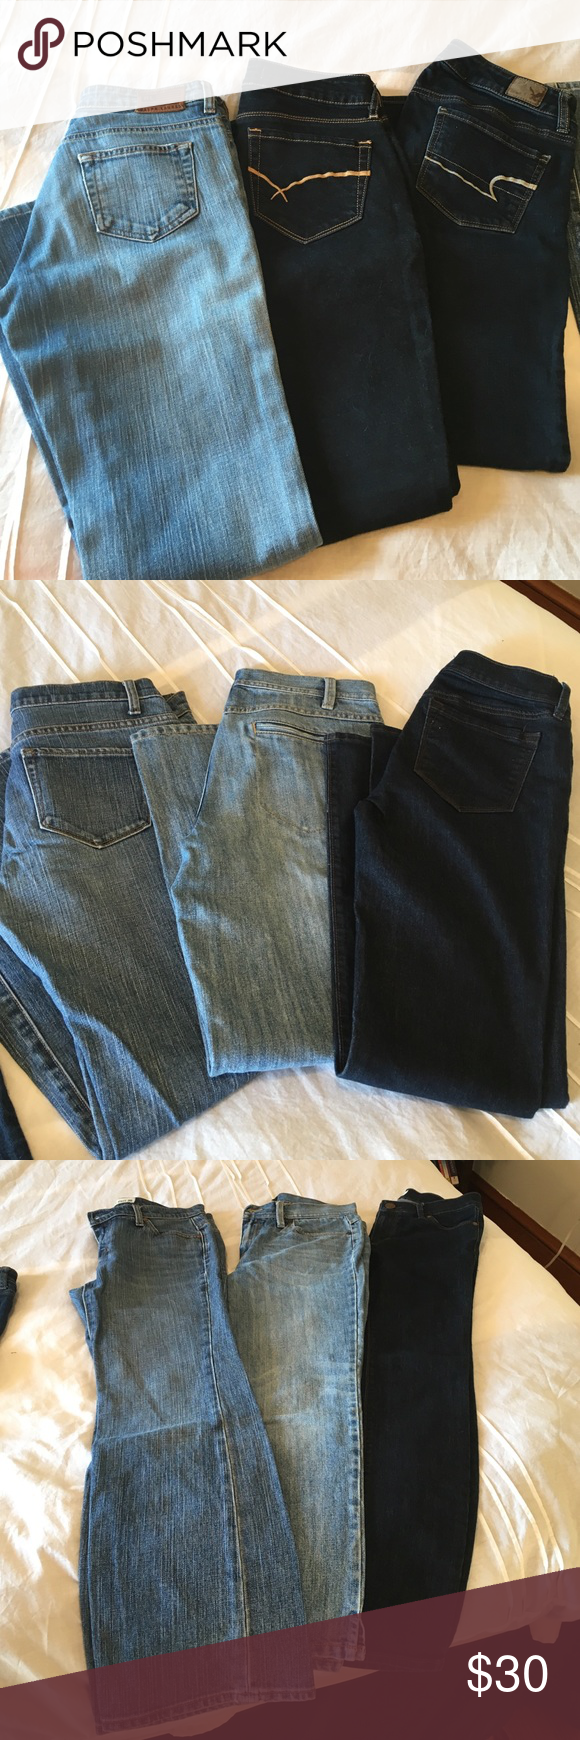 6 Pairs of Name Brand Jeans! Lightly worn, all 6 jeans included in price!  Ralph Lauren light wash - size 2.  American Eagle dark stretch - size 4 short. Bullhead dark skinny - size 5. Gap loose boot cut light wash - size 4. Talbots light wash zipper pocket - size 6 petite. LOFT dark rinse light flare size 26 petite. American Eagle Outfitters Jeans